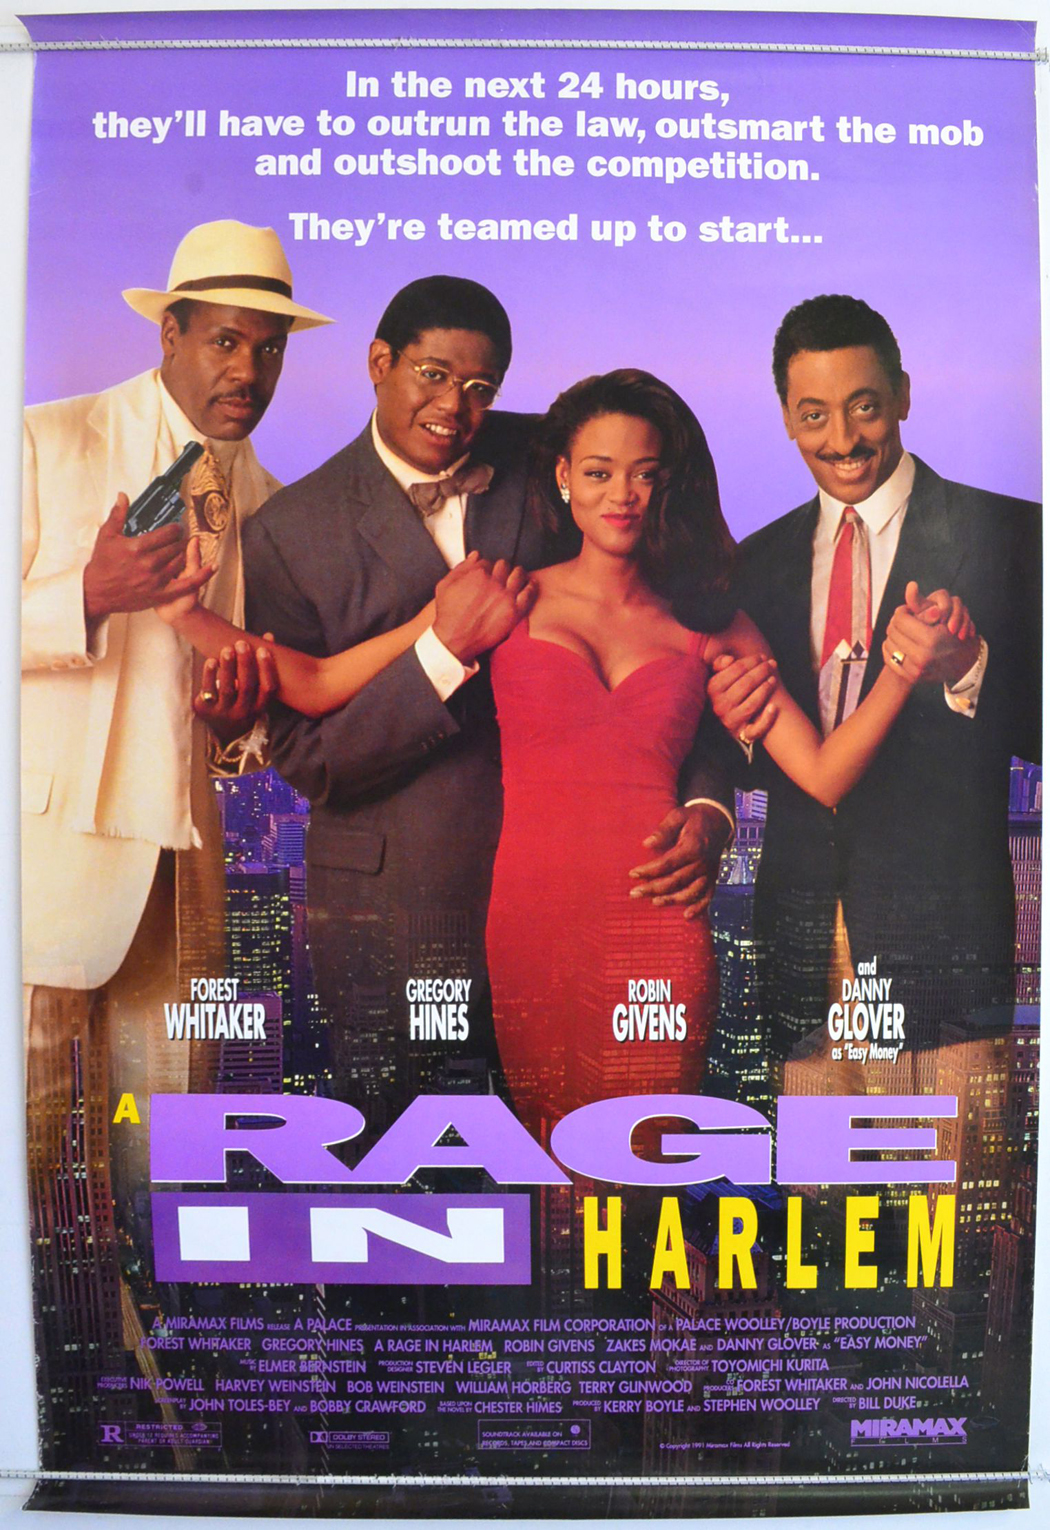 a rage in harlem Find album reviews, stream songs, credits and award information for a rage in harlem [original soundtrack] - original soundtrack on allmusic - 1990 - once again, sire's stalwart period music maven.